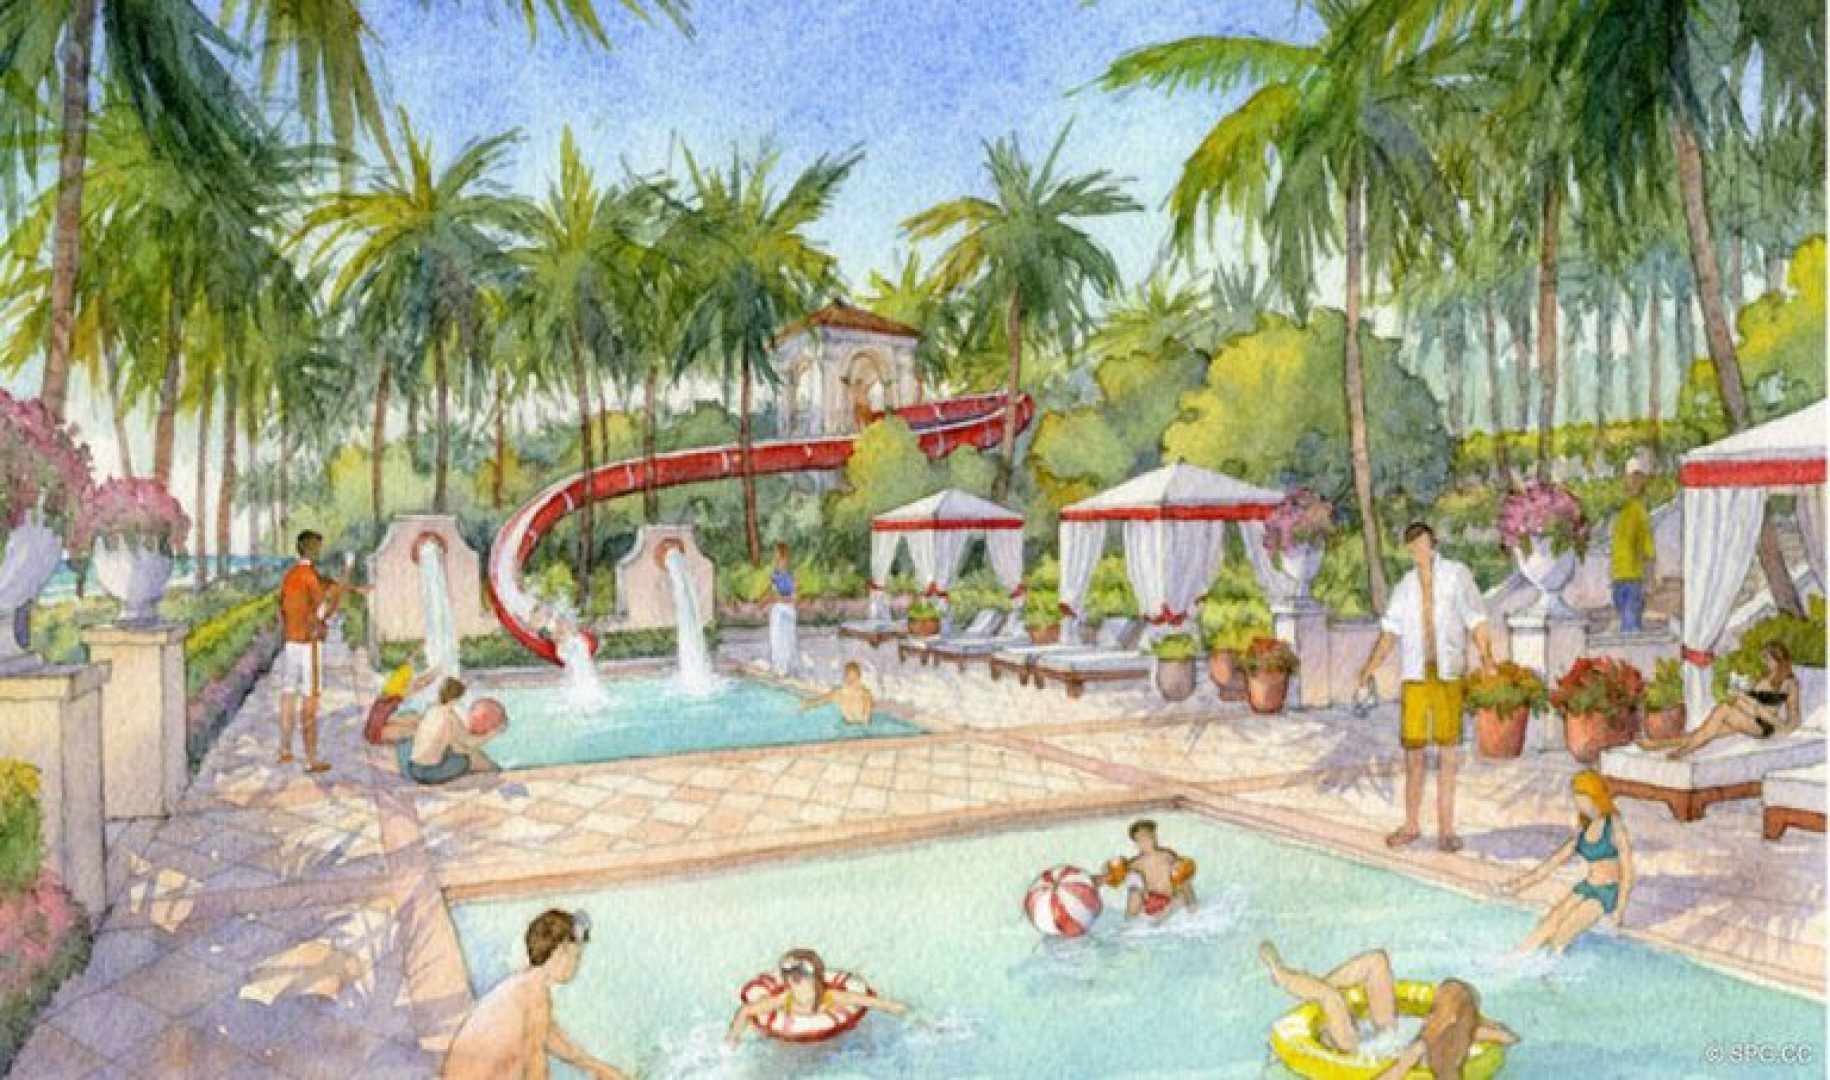 Artist Rendering of Pool Area at Estates at Acqualina, Luxury Oceanfront Condos in Sunny Isles Beach, Florida 33160